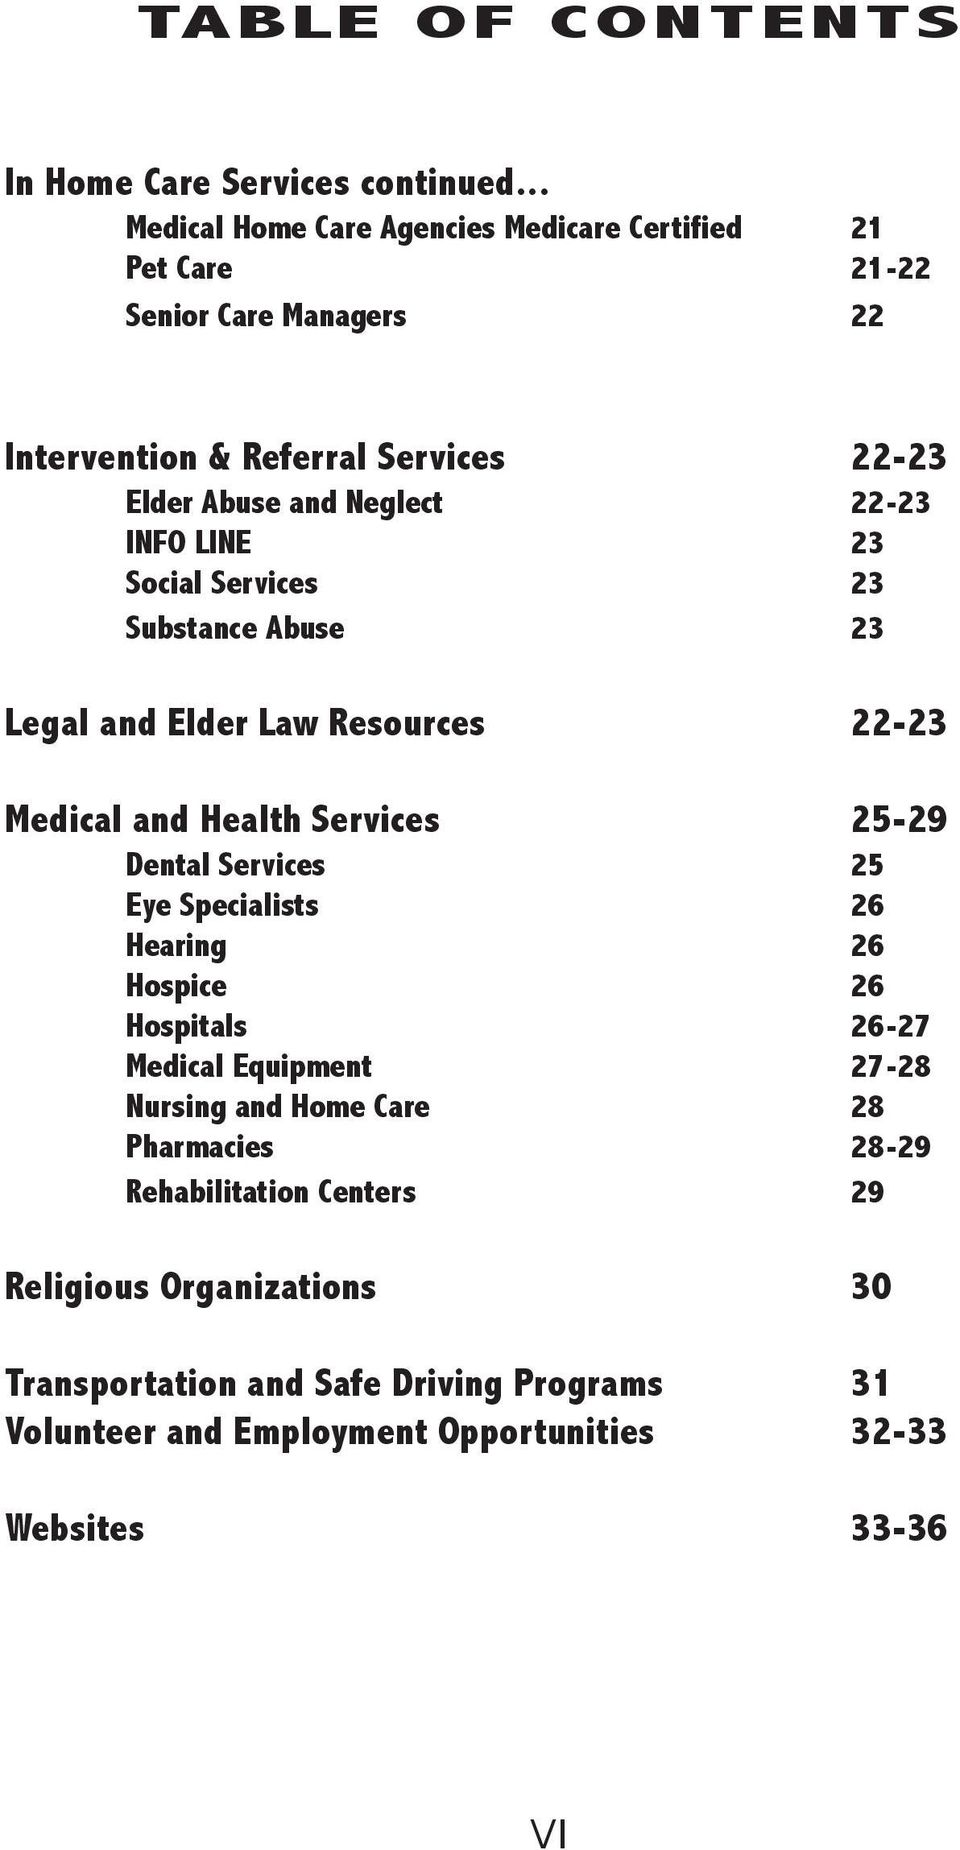 22-23 INFO LINE 23 Social Services 23 Substance Abuse 23 Legal and Elder Law Resources 22-23 Medical and Health Services 25-29 Dental Services 25 Eye